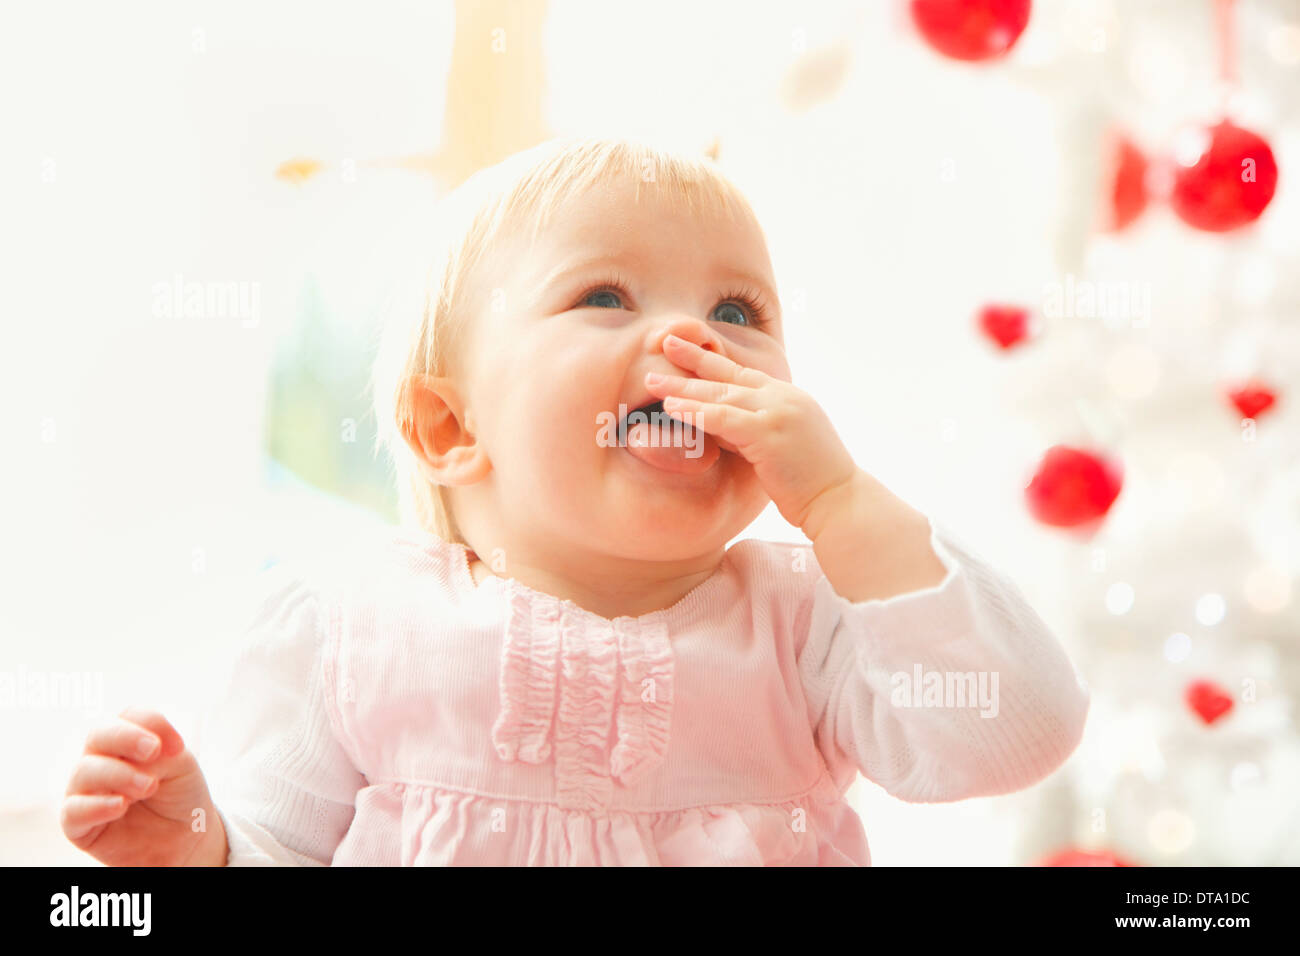 Portrait of Baby Girl with Finger in Mouth and Tongue Sticking Out Stock Photo